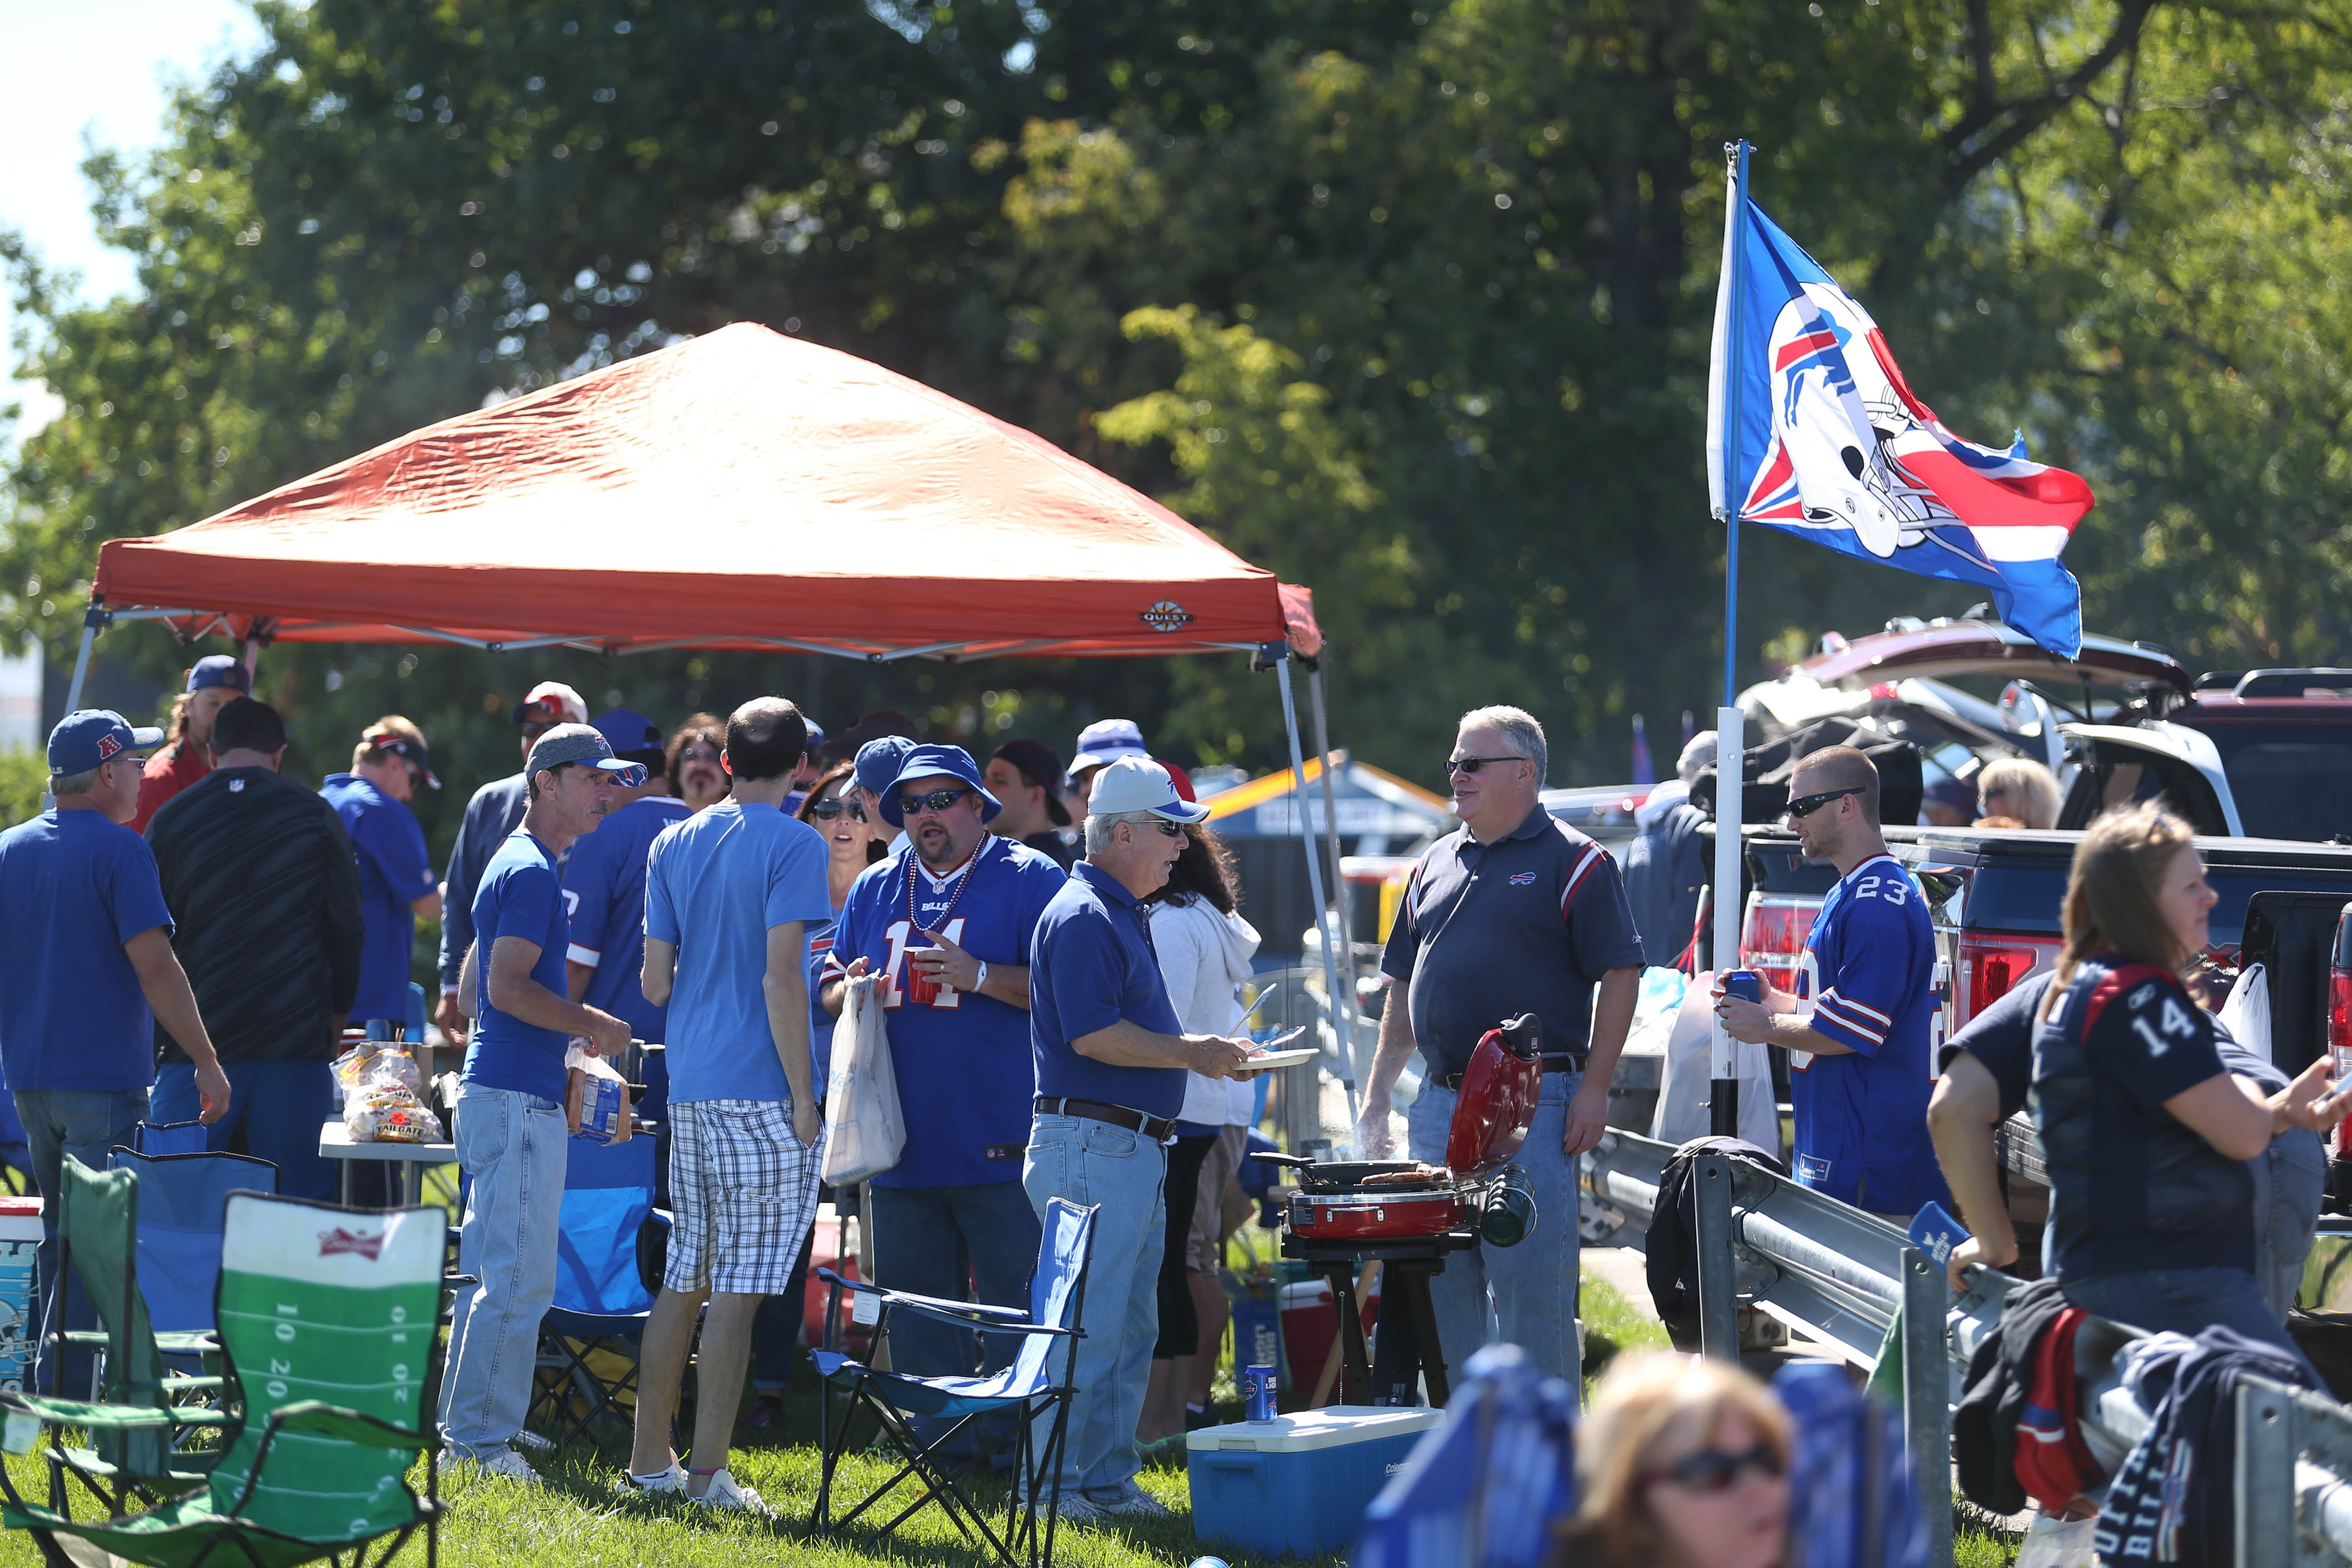 Tailgating before a Buffalo Bills game is an integral part of game-day fun around New Era Field, in Orchard Park.  Tailgaters bring an array of food and drink and visit with their neighbors prior to game time, Sunday, Sept. 25, 2016.  (Sharon Cantillon/Buffalo News)